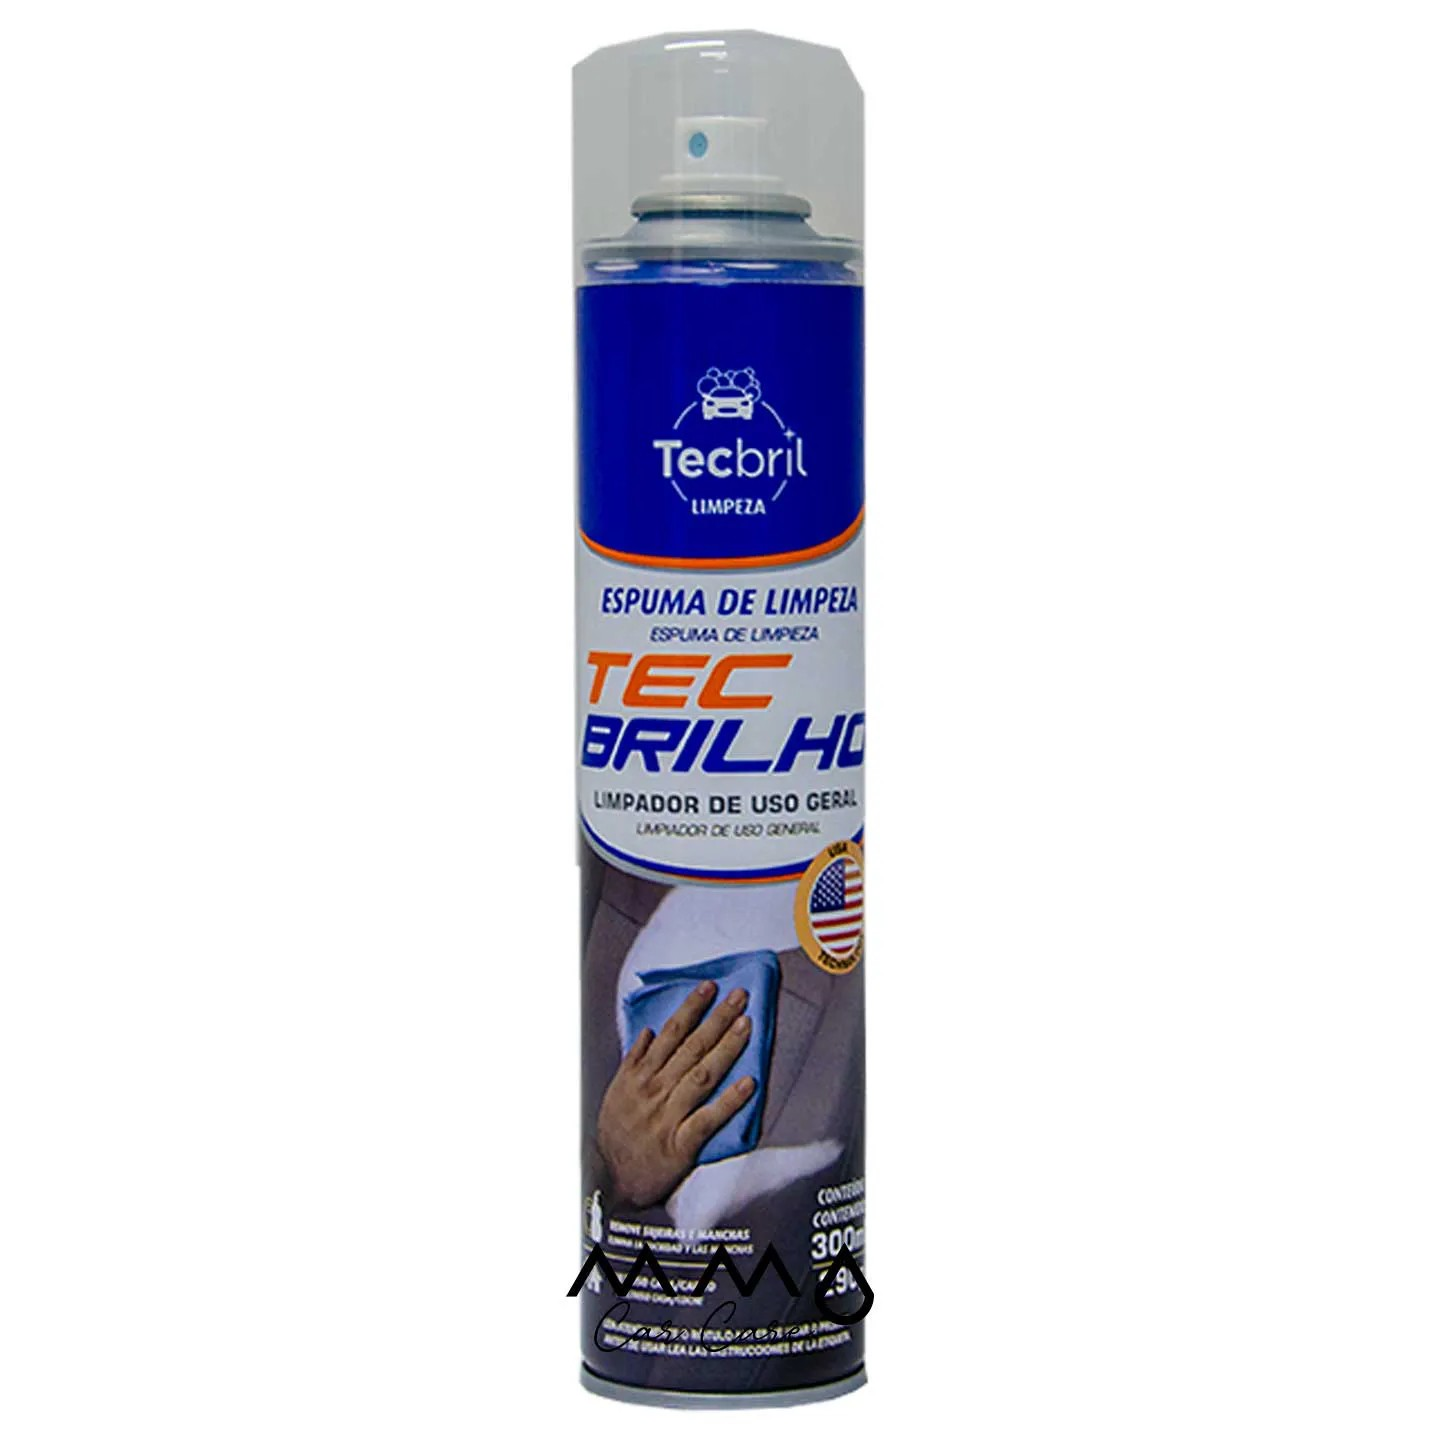 ESPUMA DE LIMPEZA TECBRIL 300ML